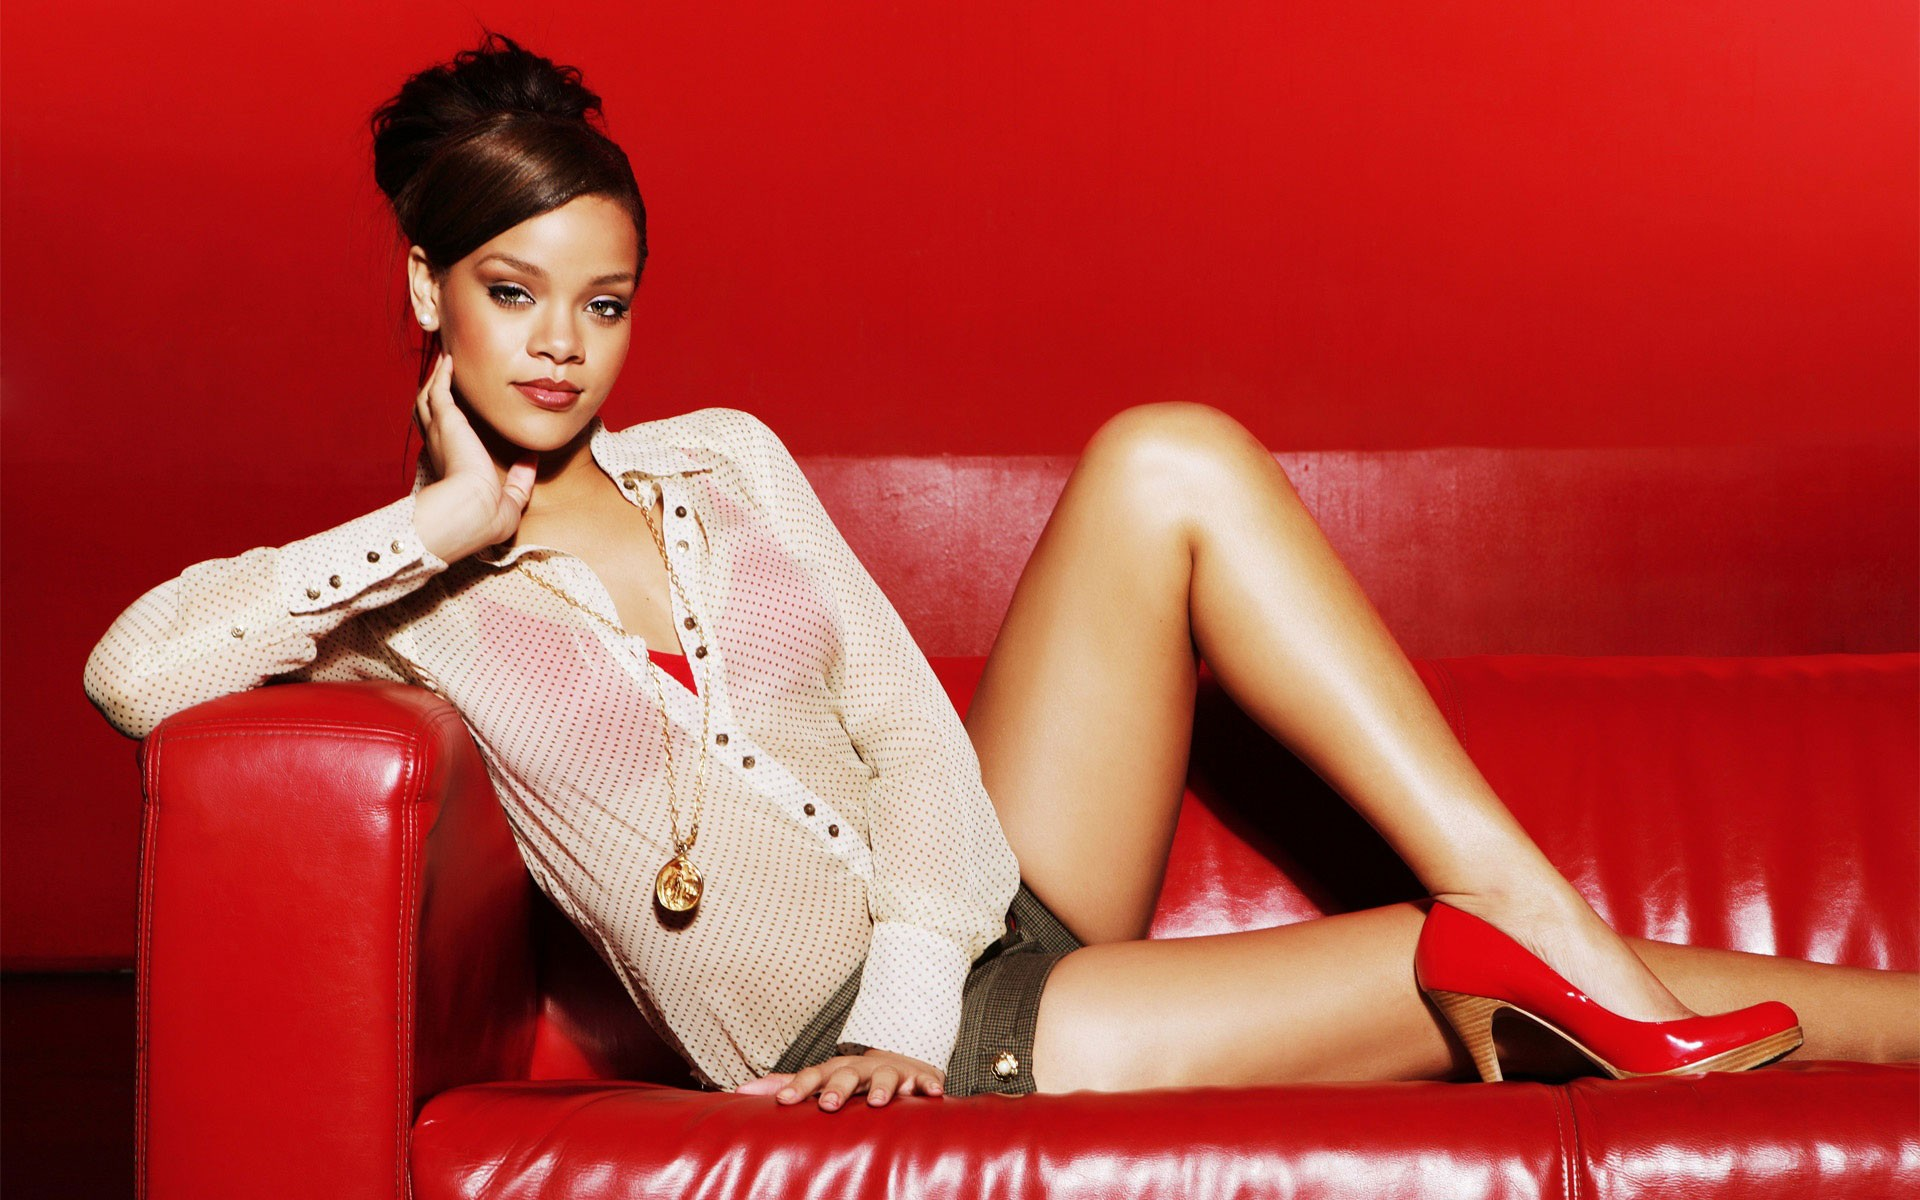 Rihanna wallpaper download free awesome hd wallpapers of 1920x1200 rihanna wallpapers hd download voltagebd Gallery